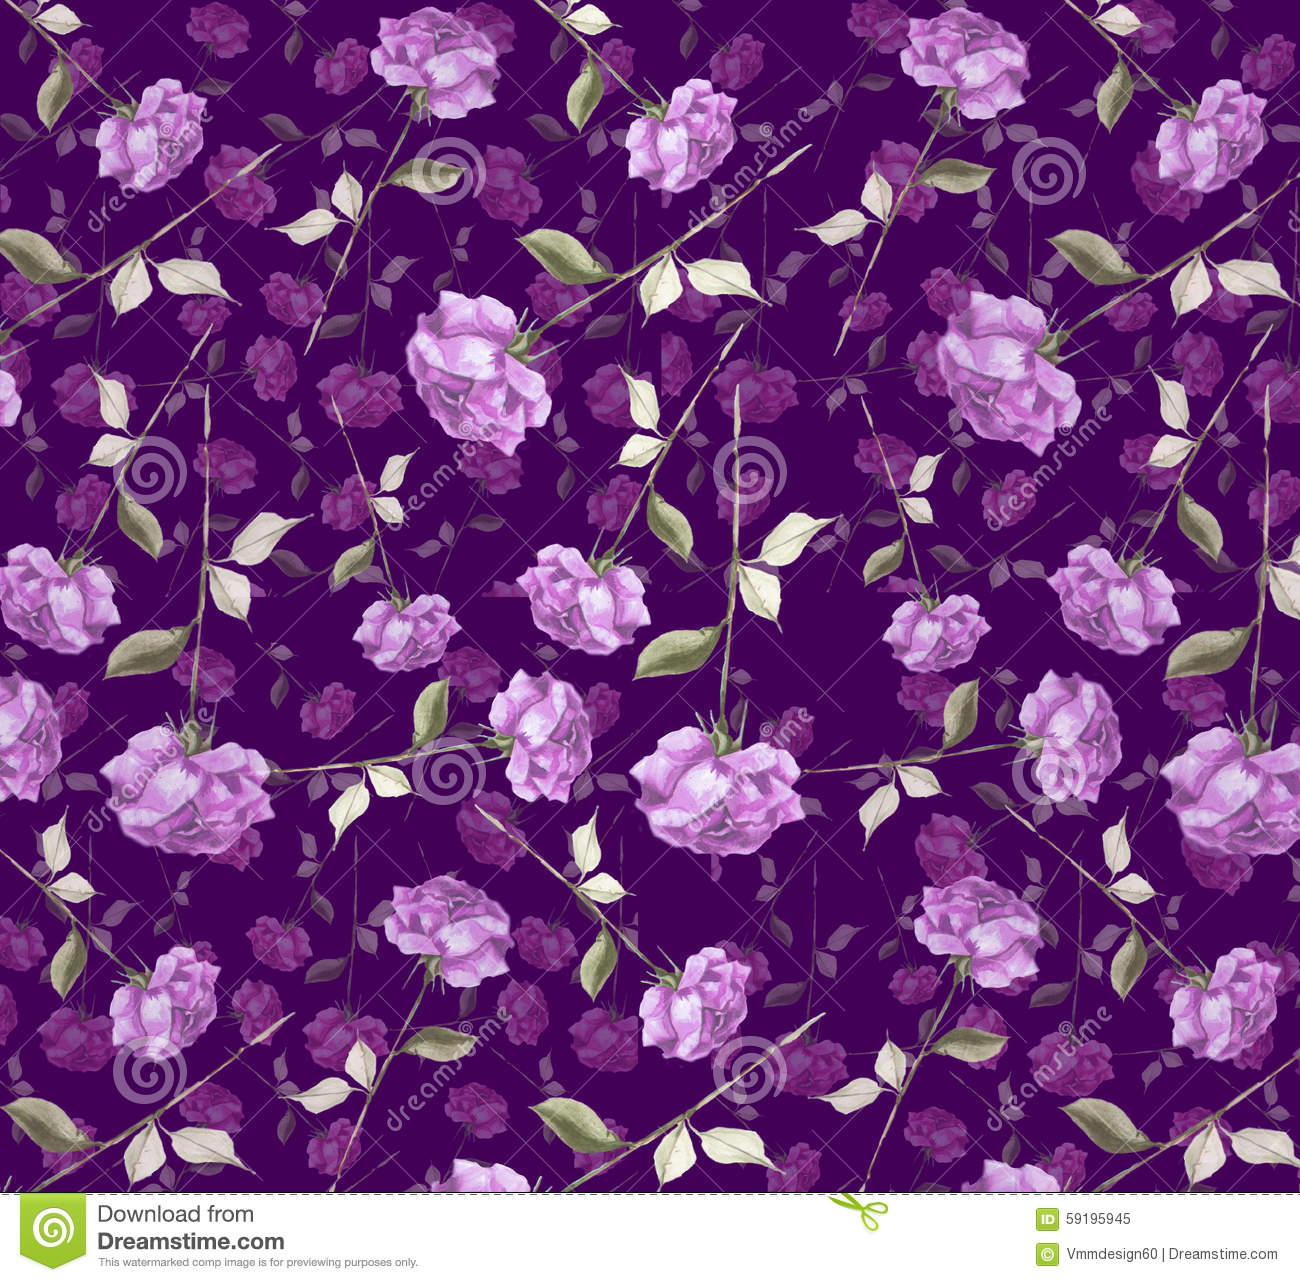 luxurious purple violet watercolor abstract rose flower